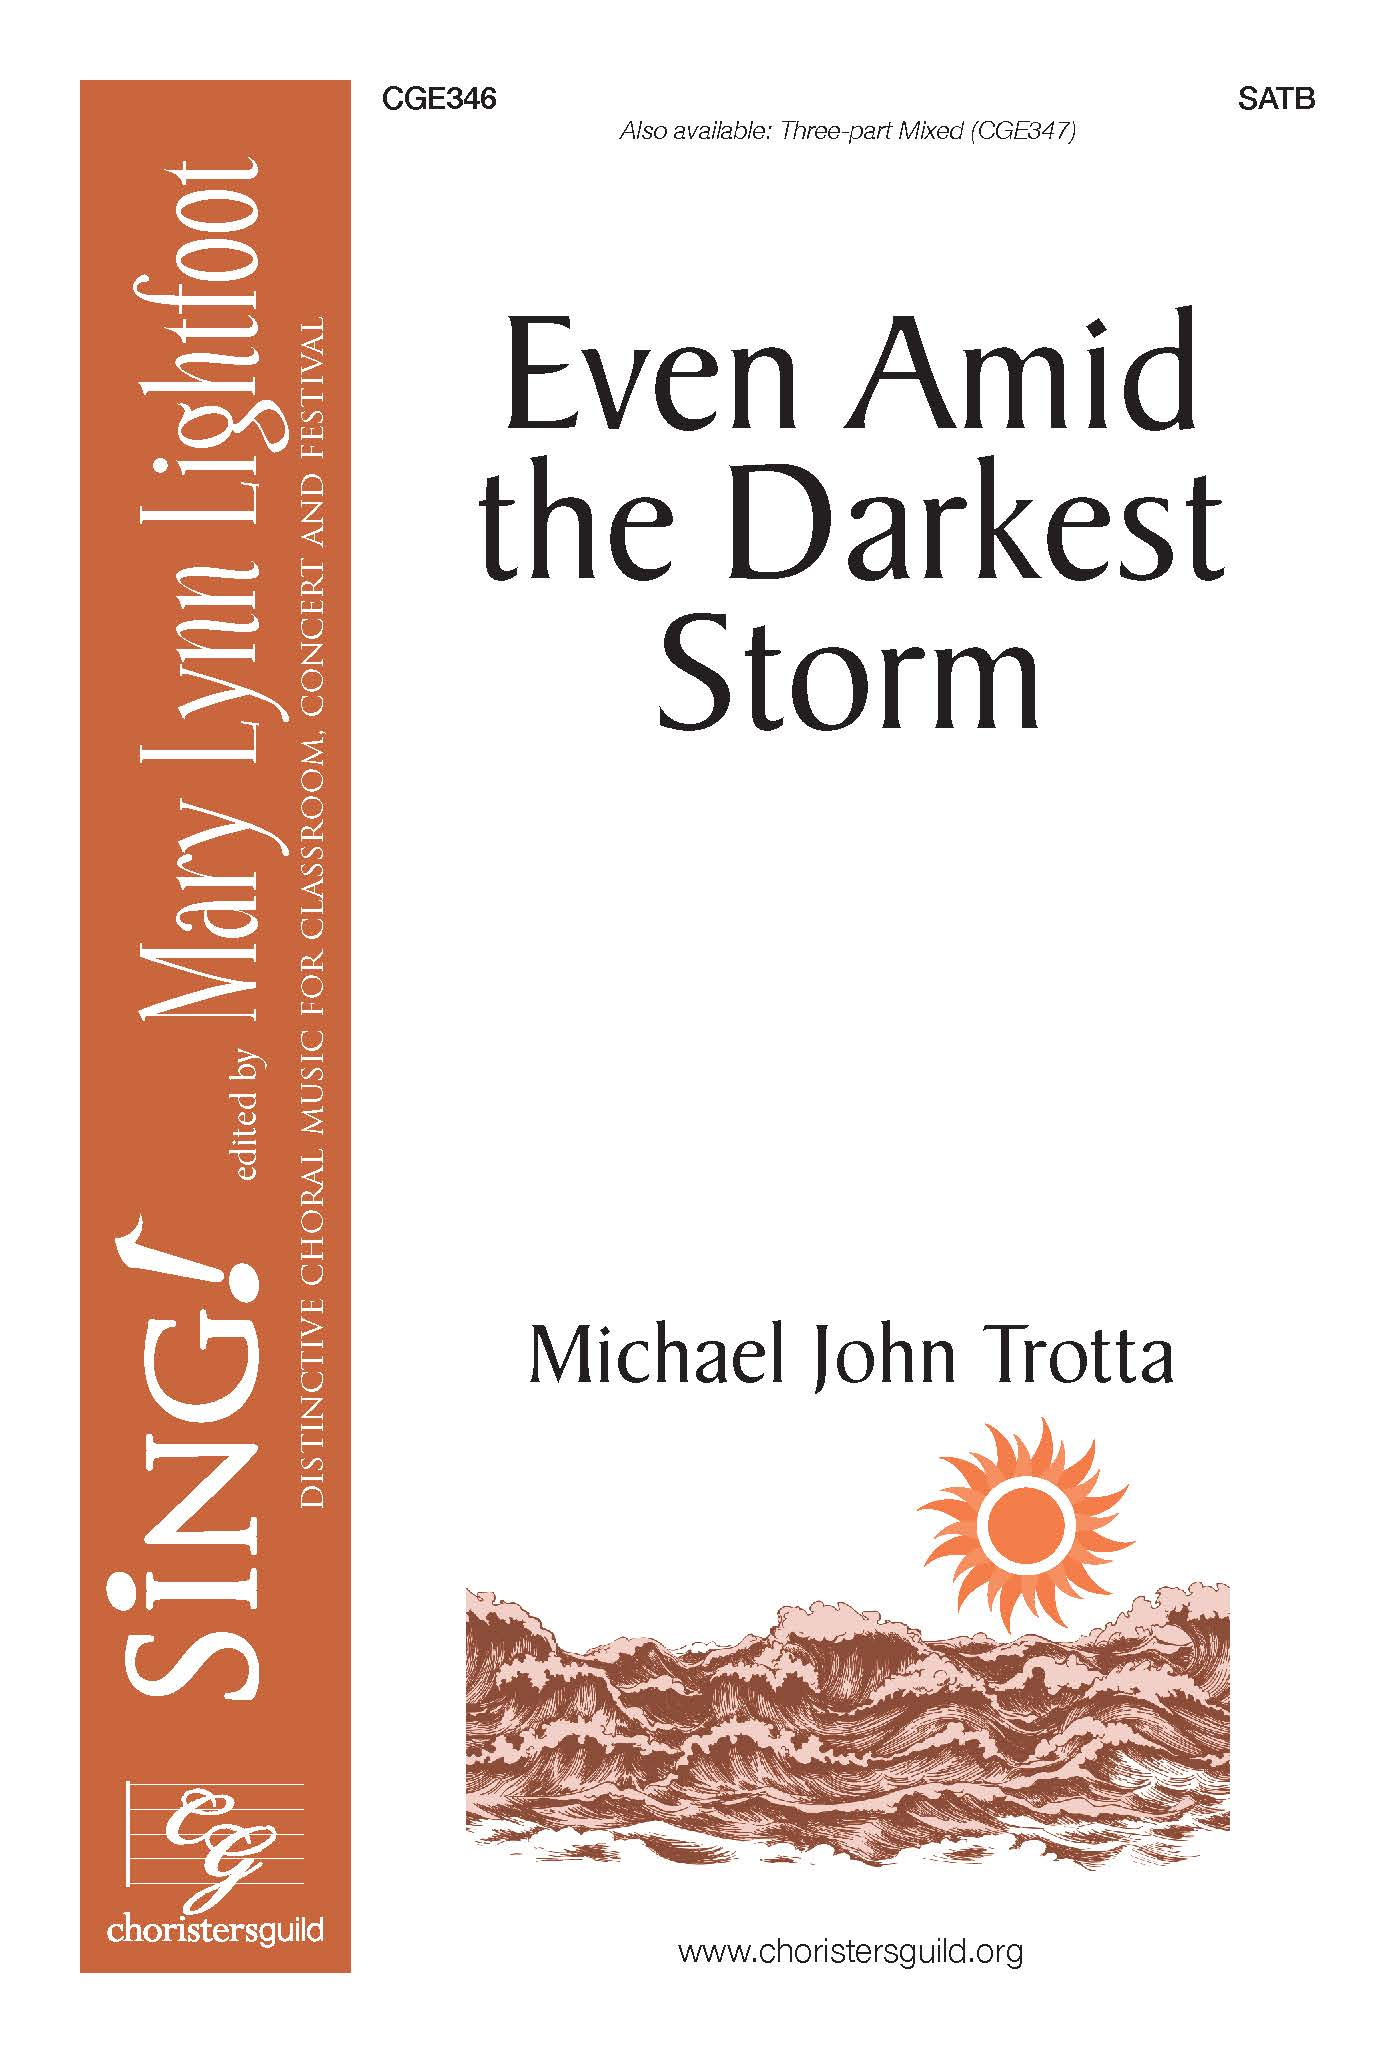 Even Amid the Darkest Storm - SATB